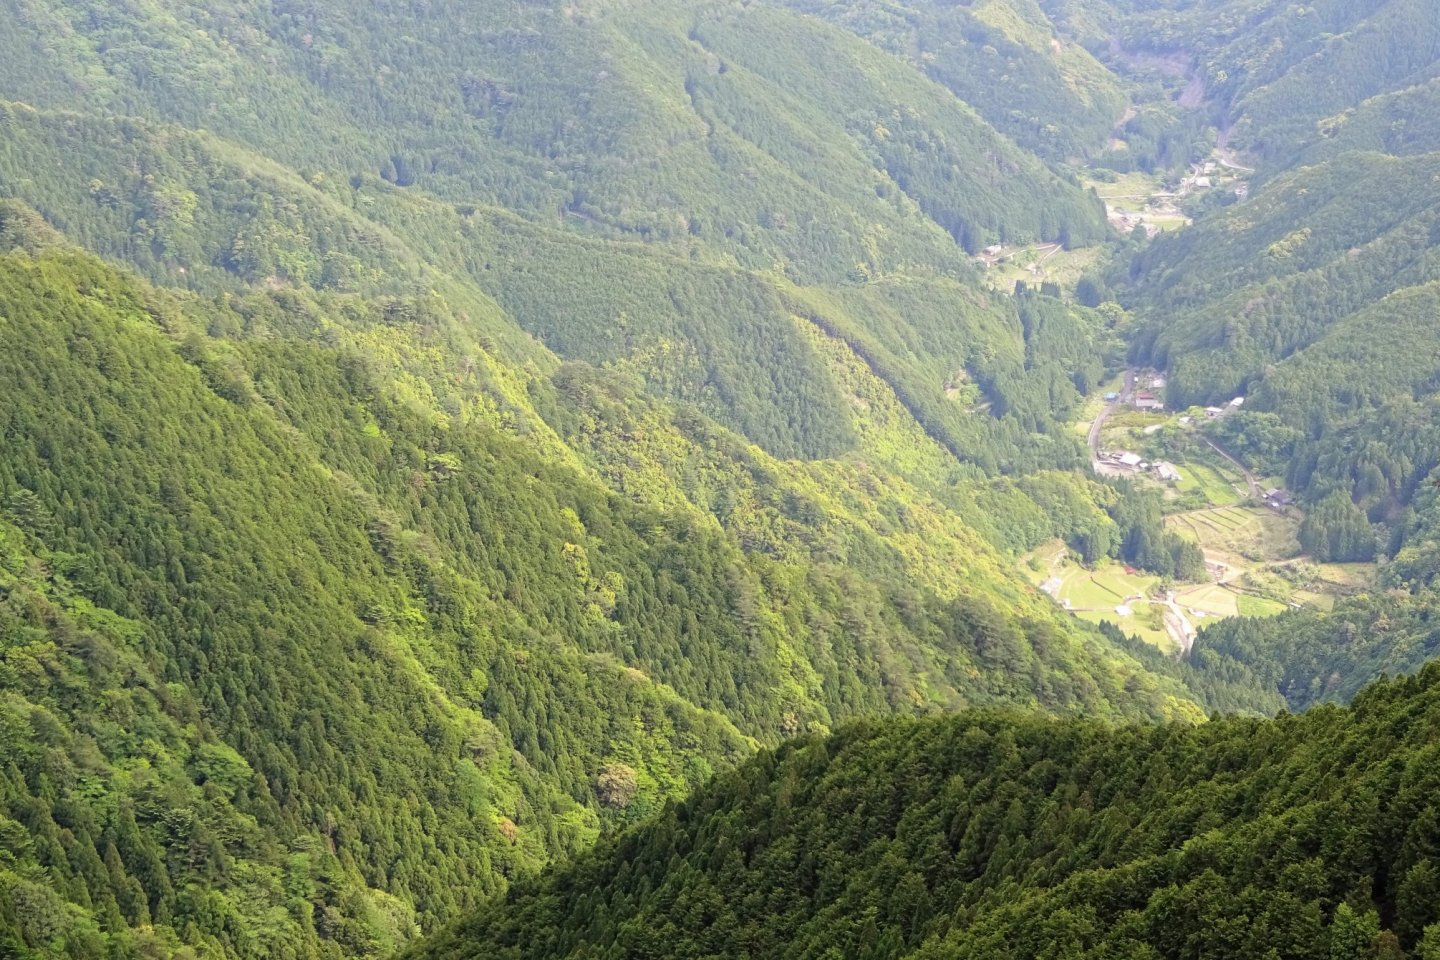 The Kii Peninsula is covered in forest as far as you can see